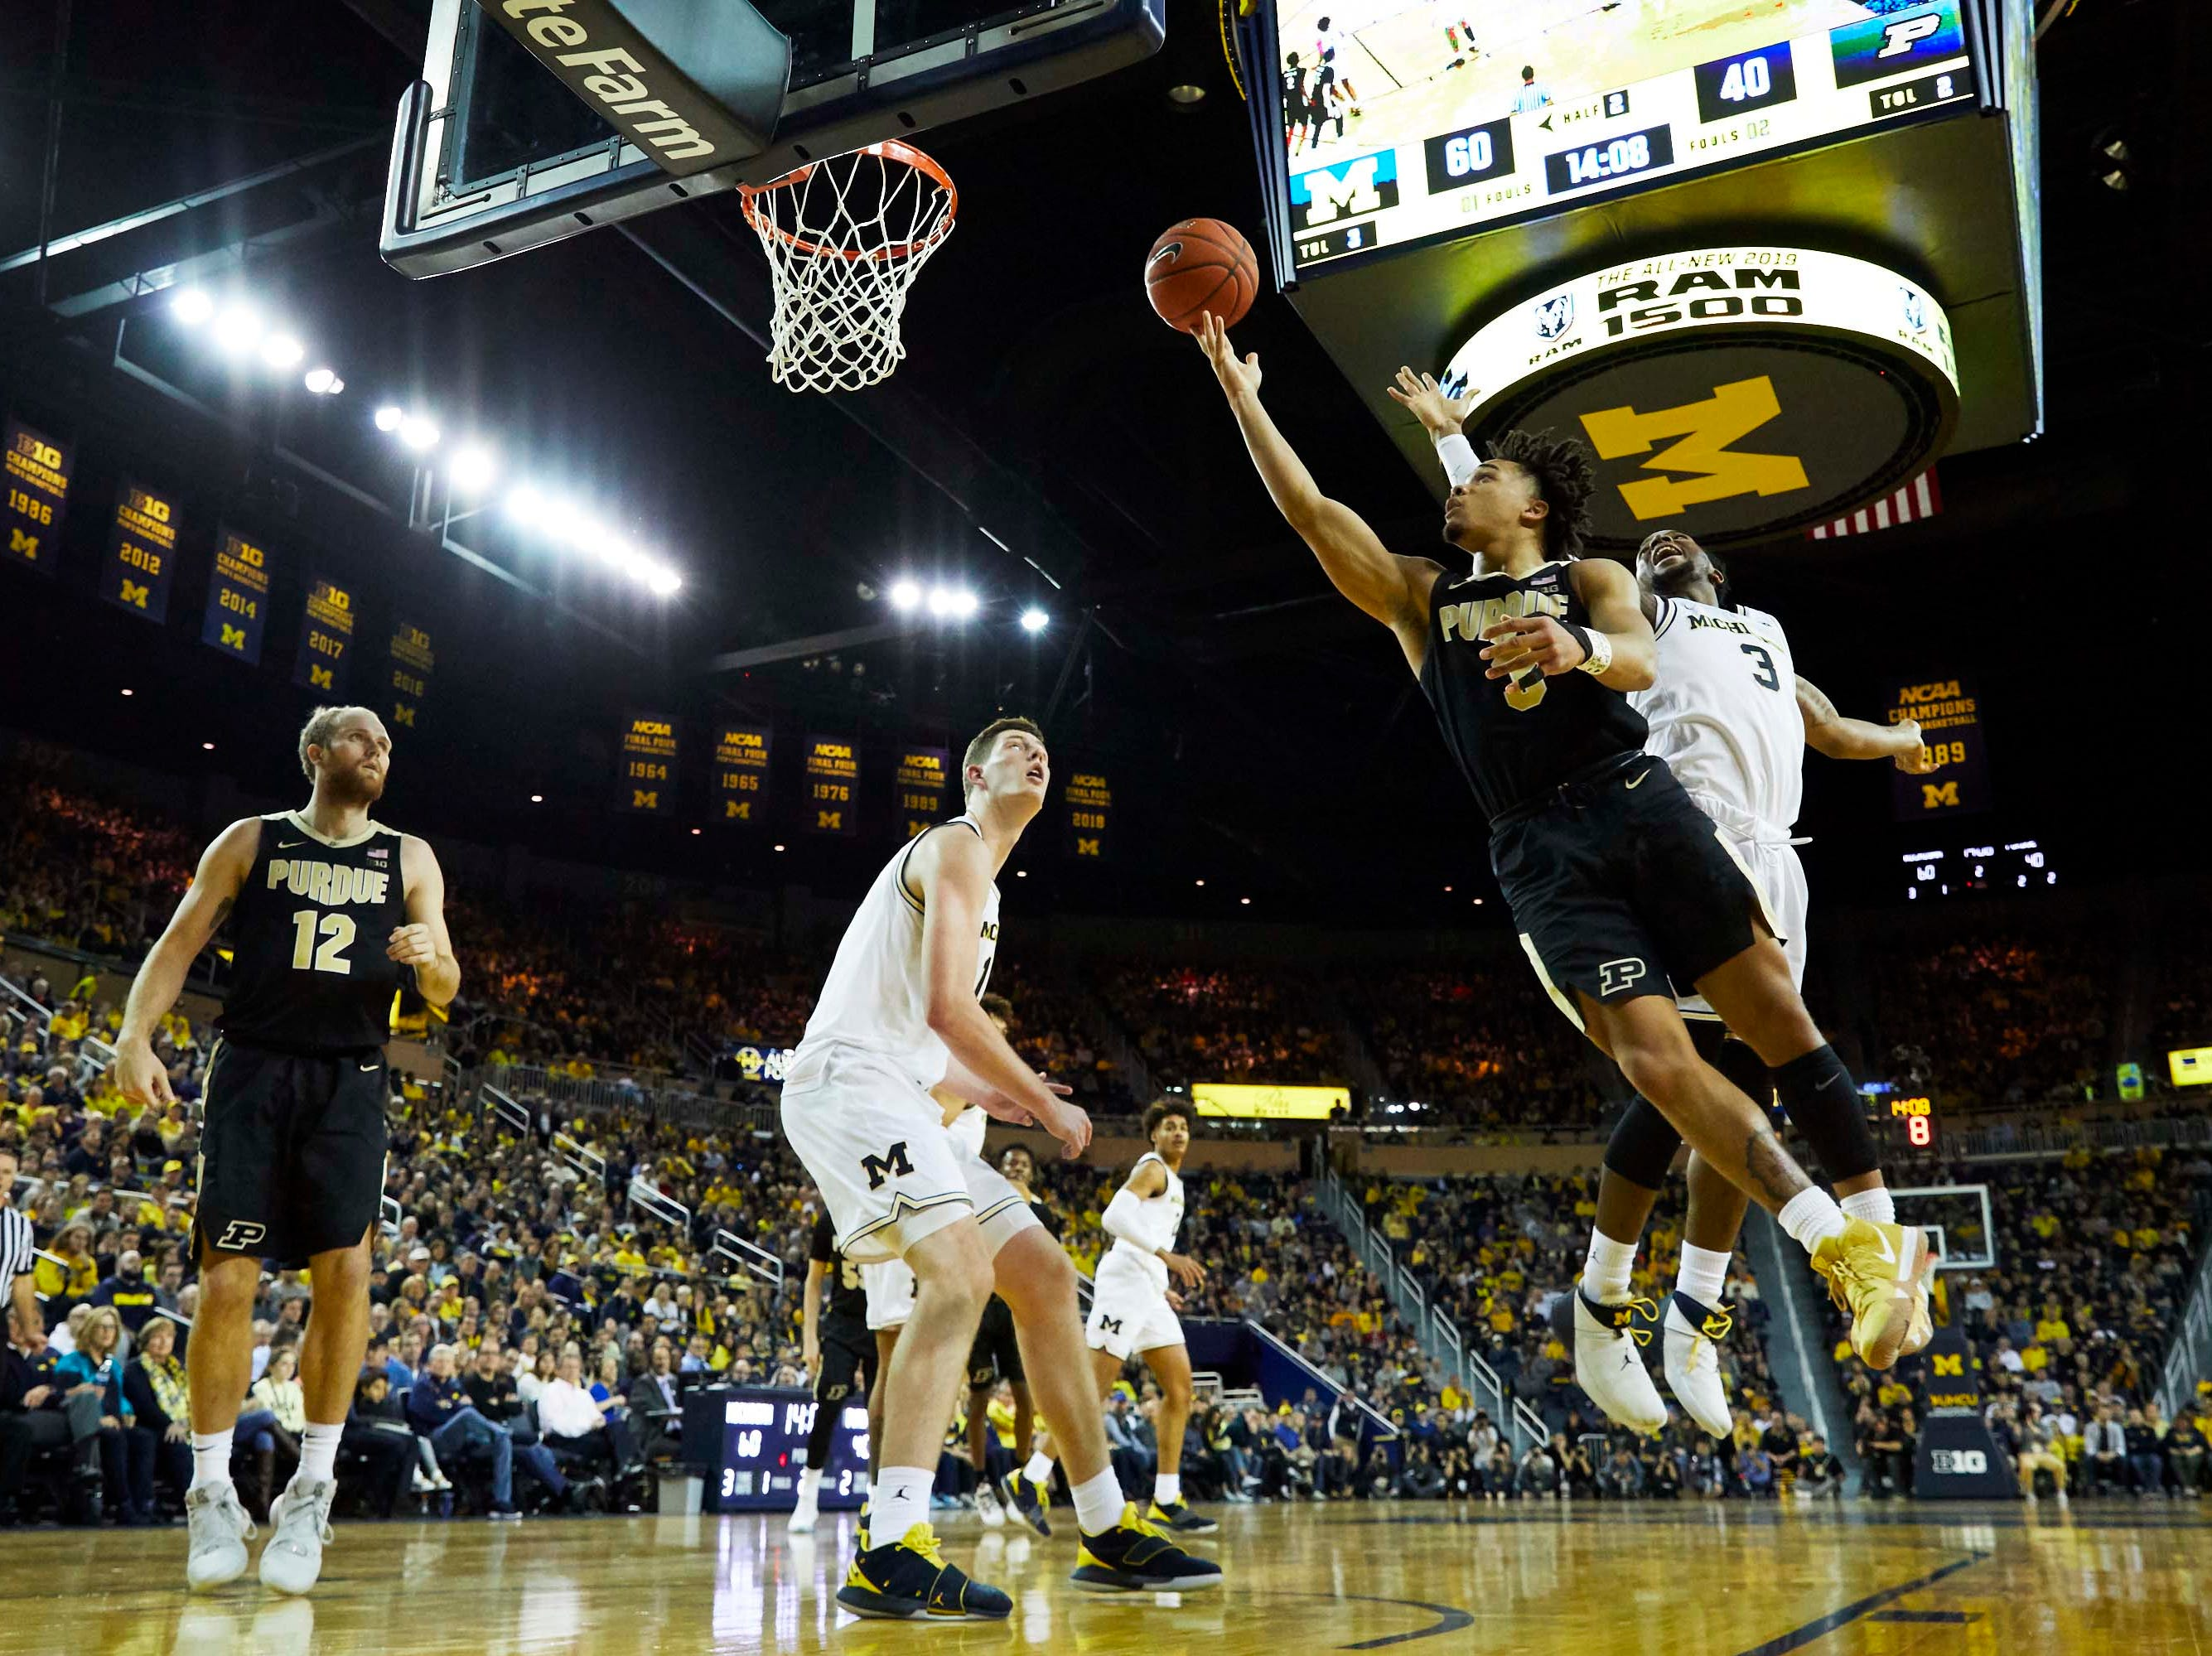 Dec 1, 2018; Ann Arbor, MI, USA; Purdue Boilermakers guard Carsen Edwards (3) shoots on Michigan Wolverines guard Zavier Simpson (3) in the second half at Crisler Center. Mandatory Credit: Rick Osentoski-USA TODAY Sports